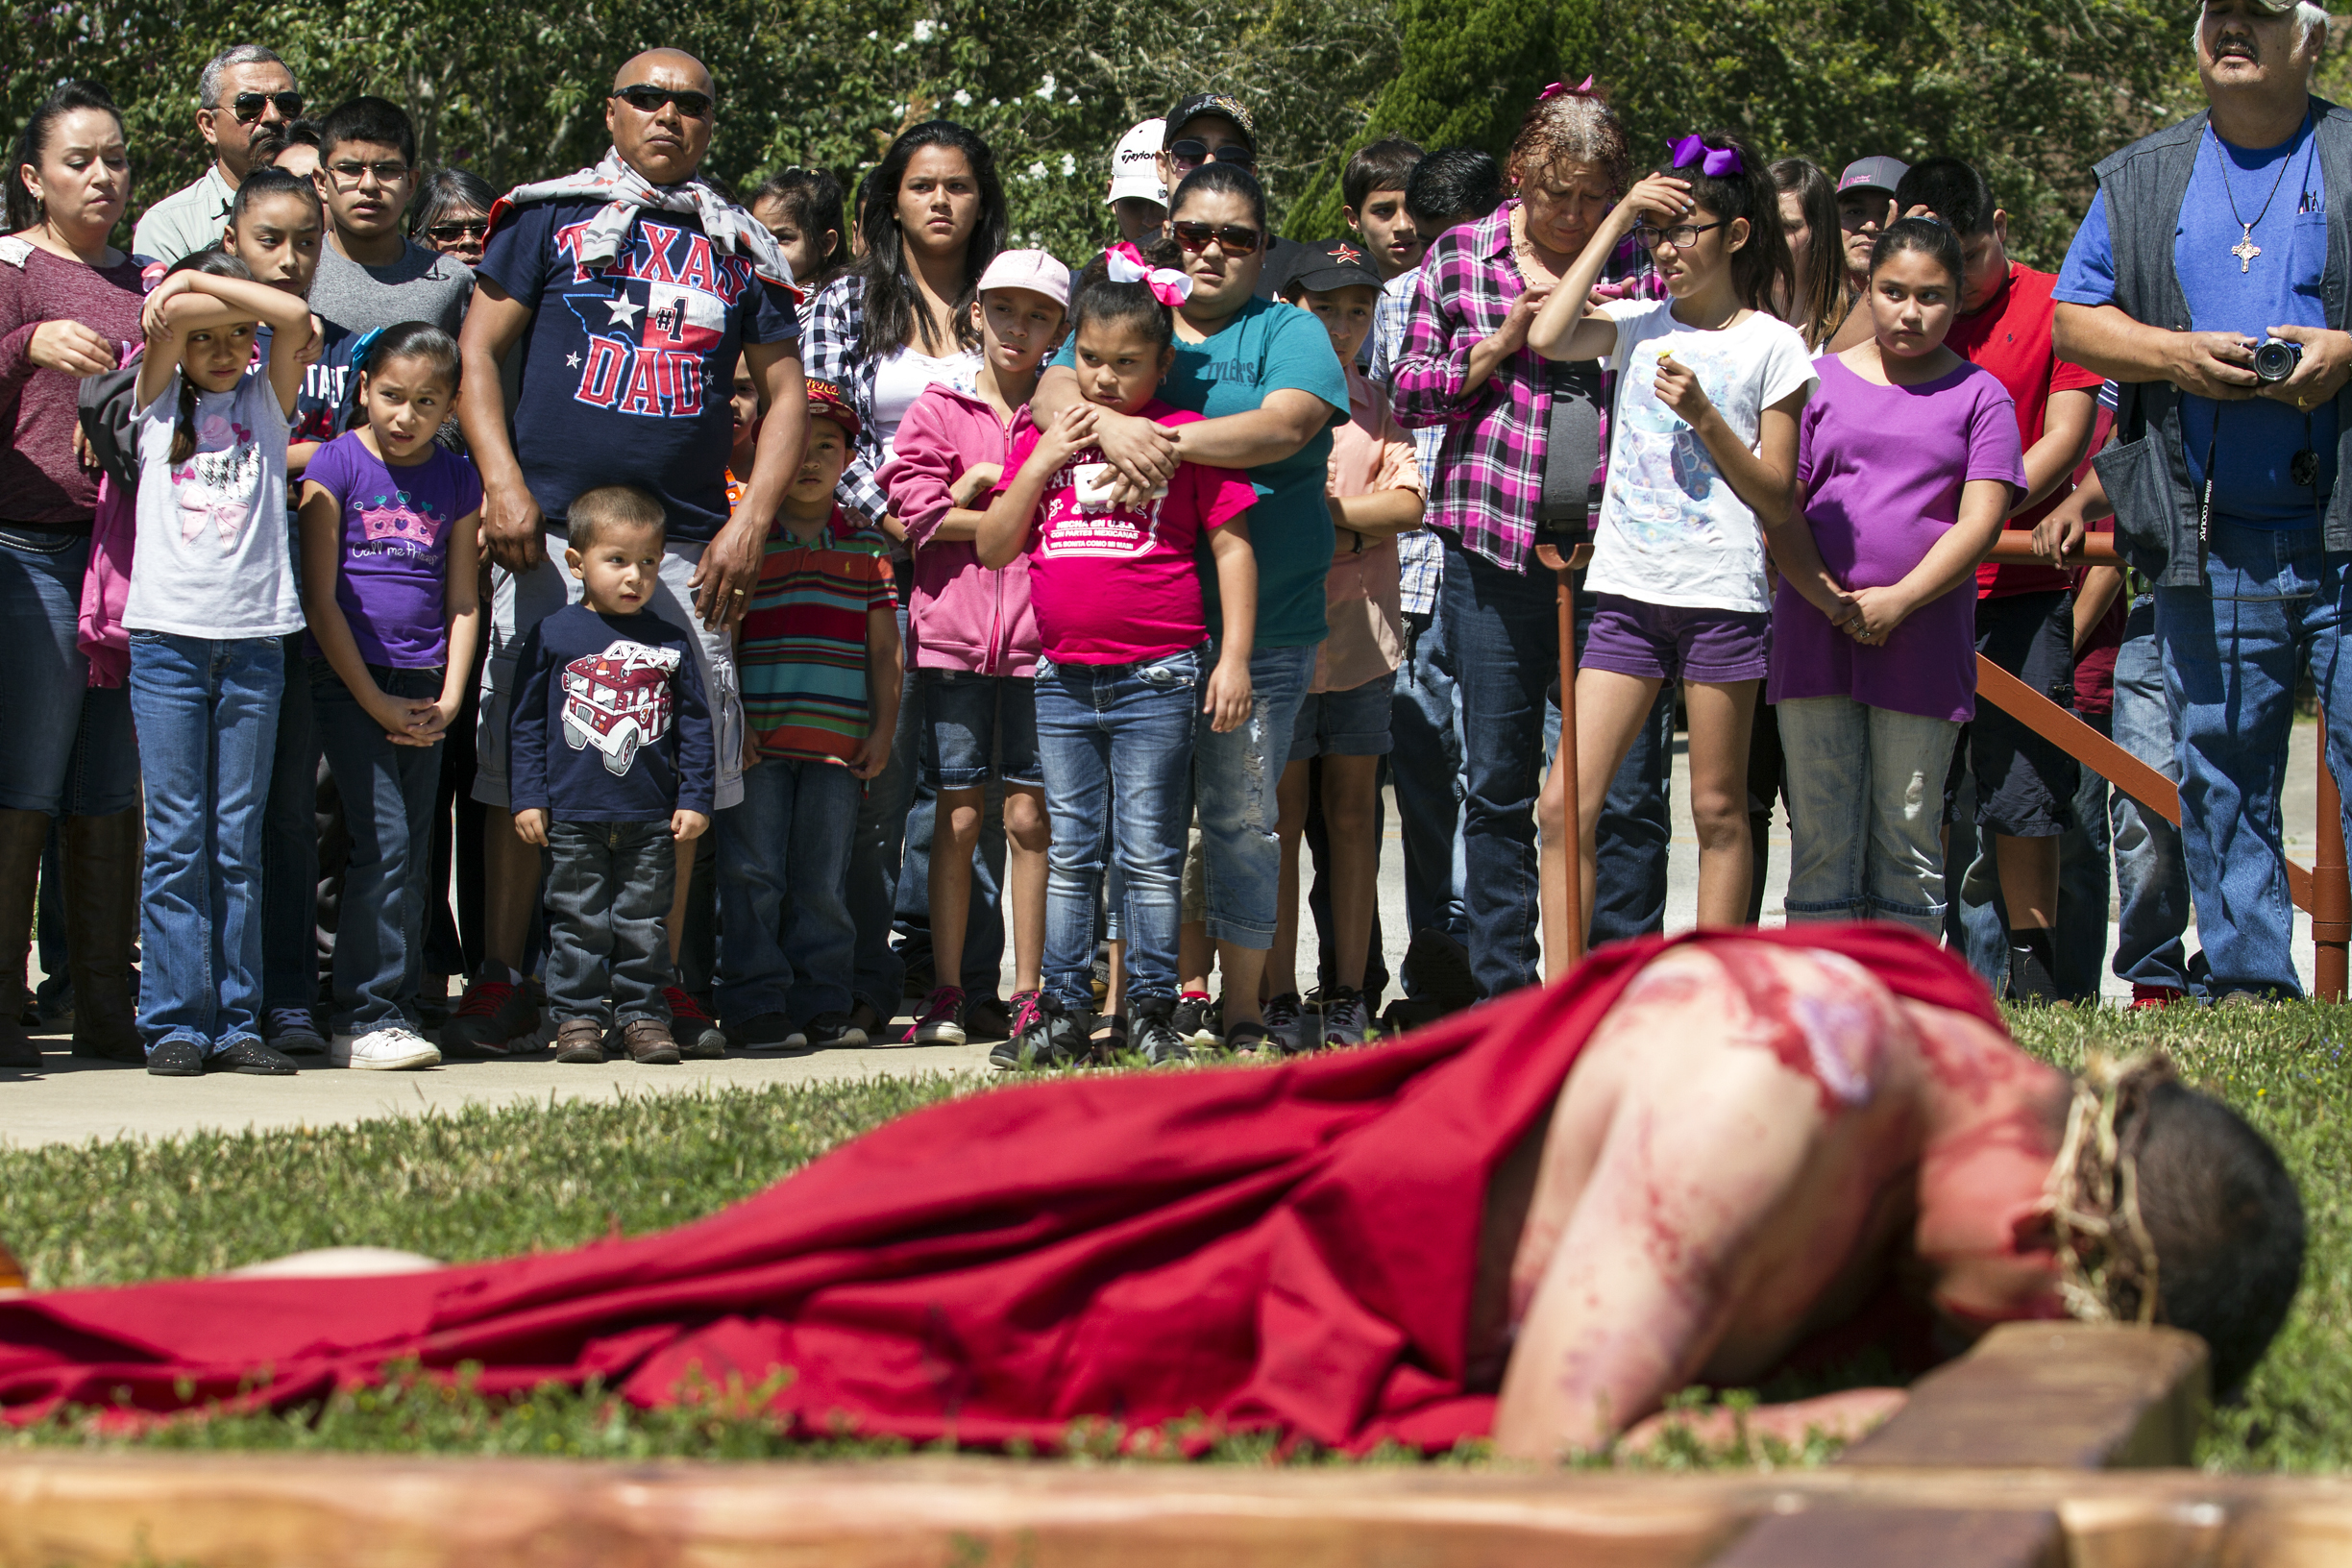 "Baltasar Godinez, 21, of Victoria, lies down next to the cross while portraying Jesus during a reenactment of the crucifixion of Christ on Friday, March 25, 2016, at Our Lady of Sorrows Catholic Church in Victoria, TX. ""Father chose me. I guess I fit the role... The hardest part was staying completely still when I died,"" Godinez said."